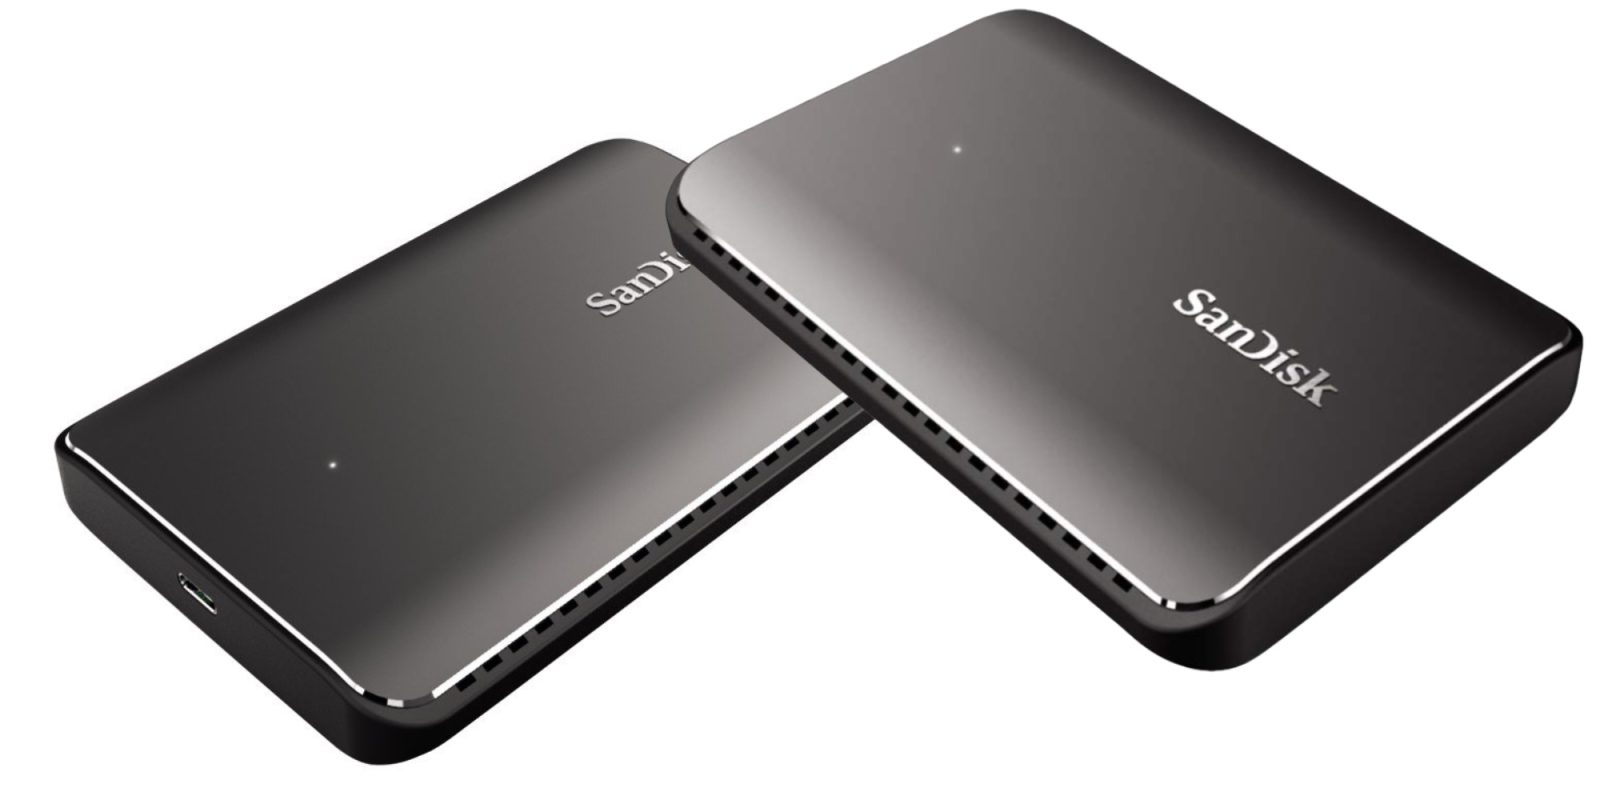 Take 20% off SanDisk's Extreme 900 Portable 480GB SSD at a